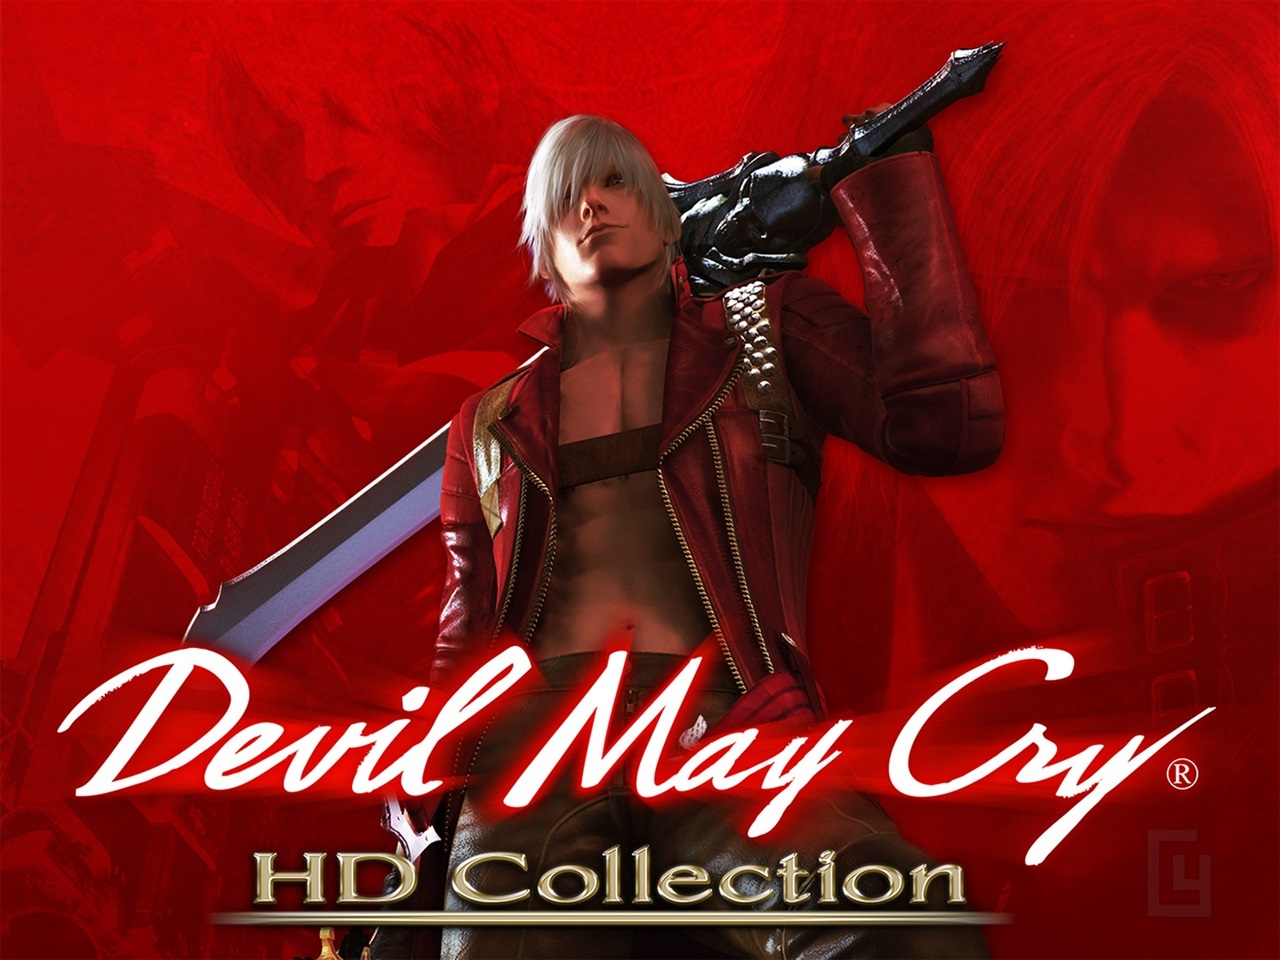 Devil May Cry HD Collection making its way to PS4, Xbox One and PC next year